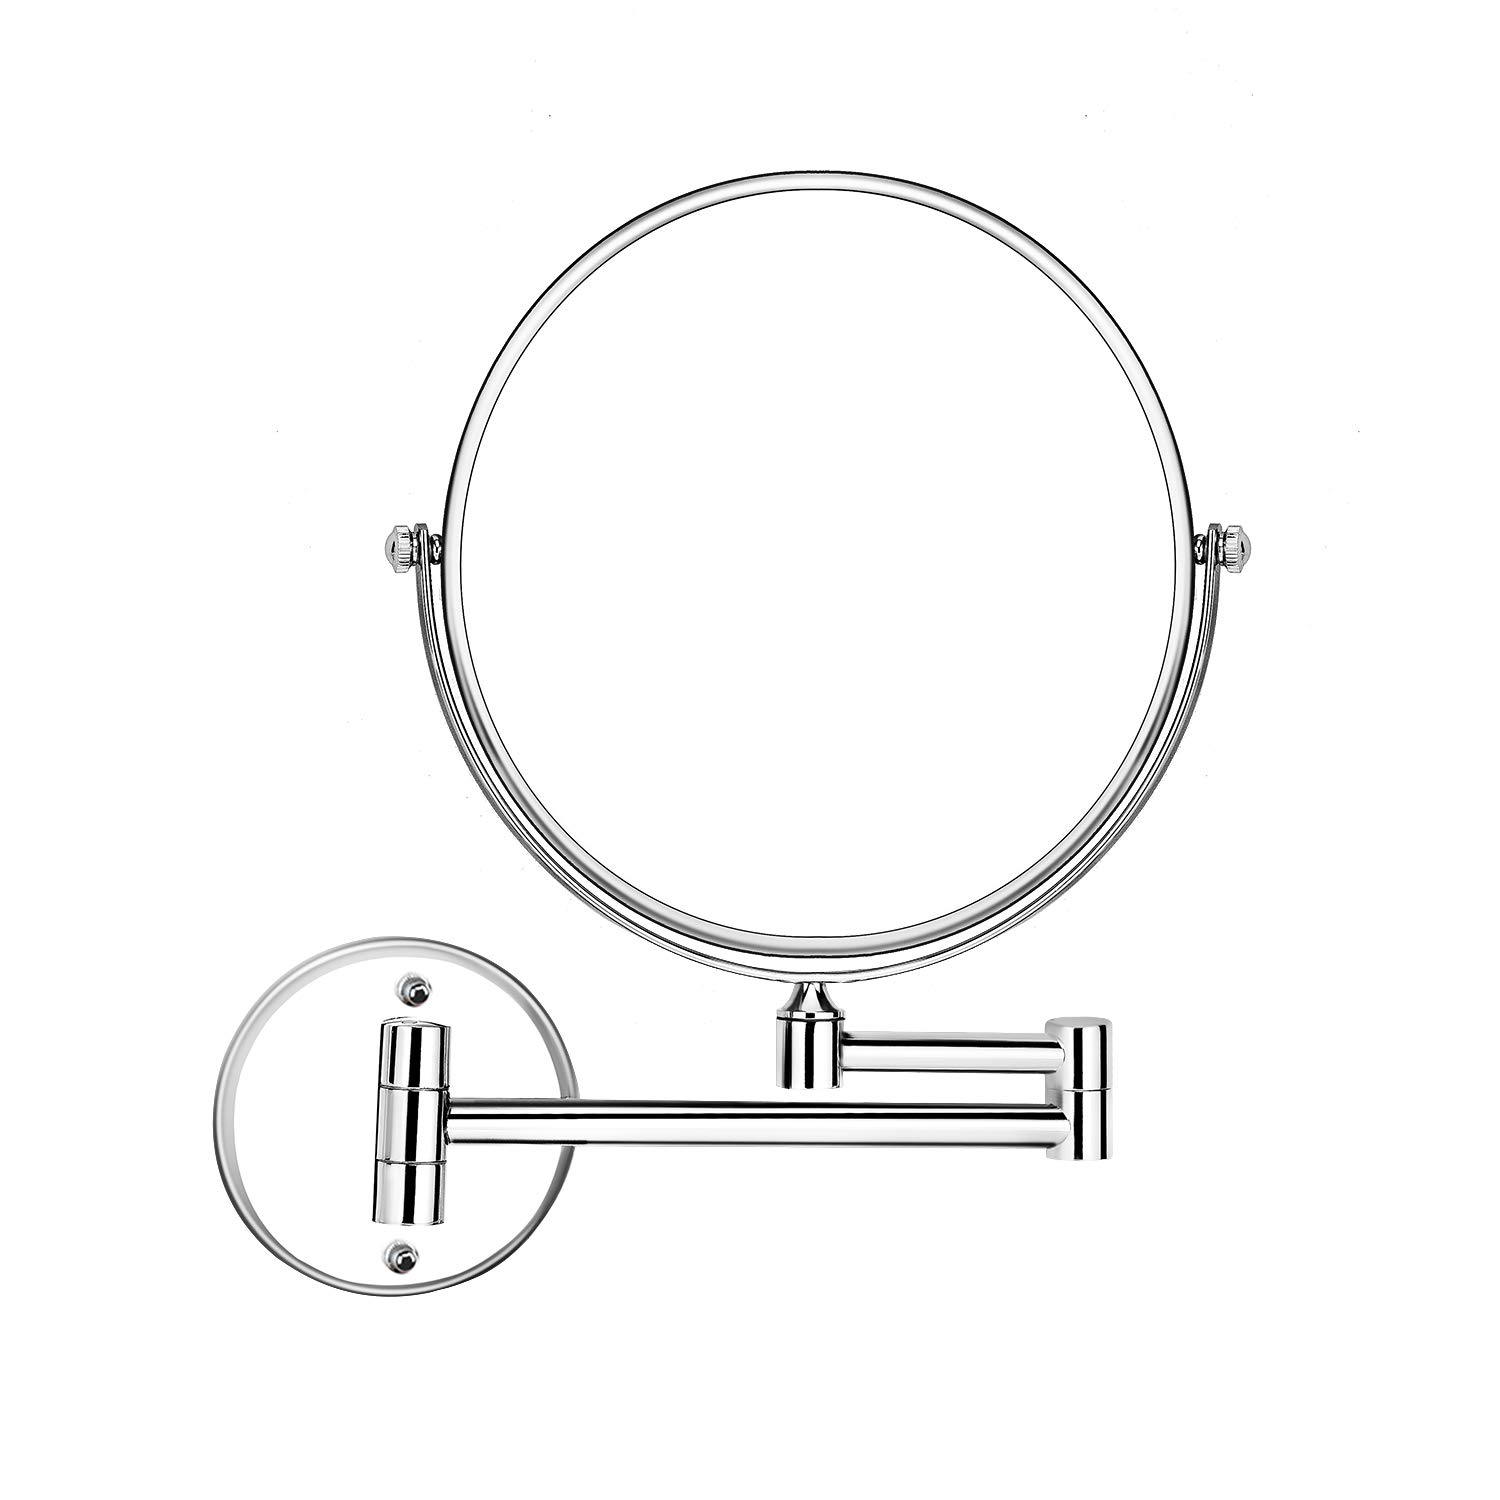 Xinyv Wall Mount Makeup Mirror Two-sided Swivel 8-Inch Magnifying Beauty Mirrors with 3x Magnification, 17.5 Inches Extension Chromium